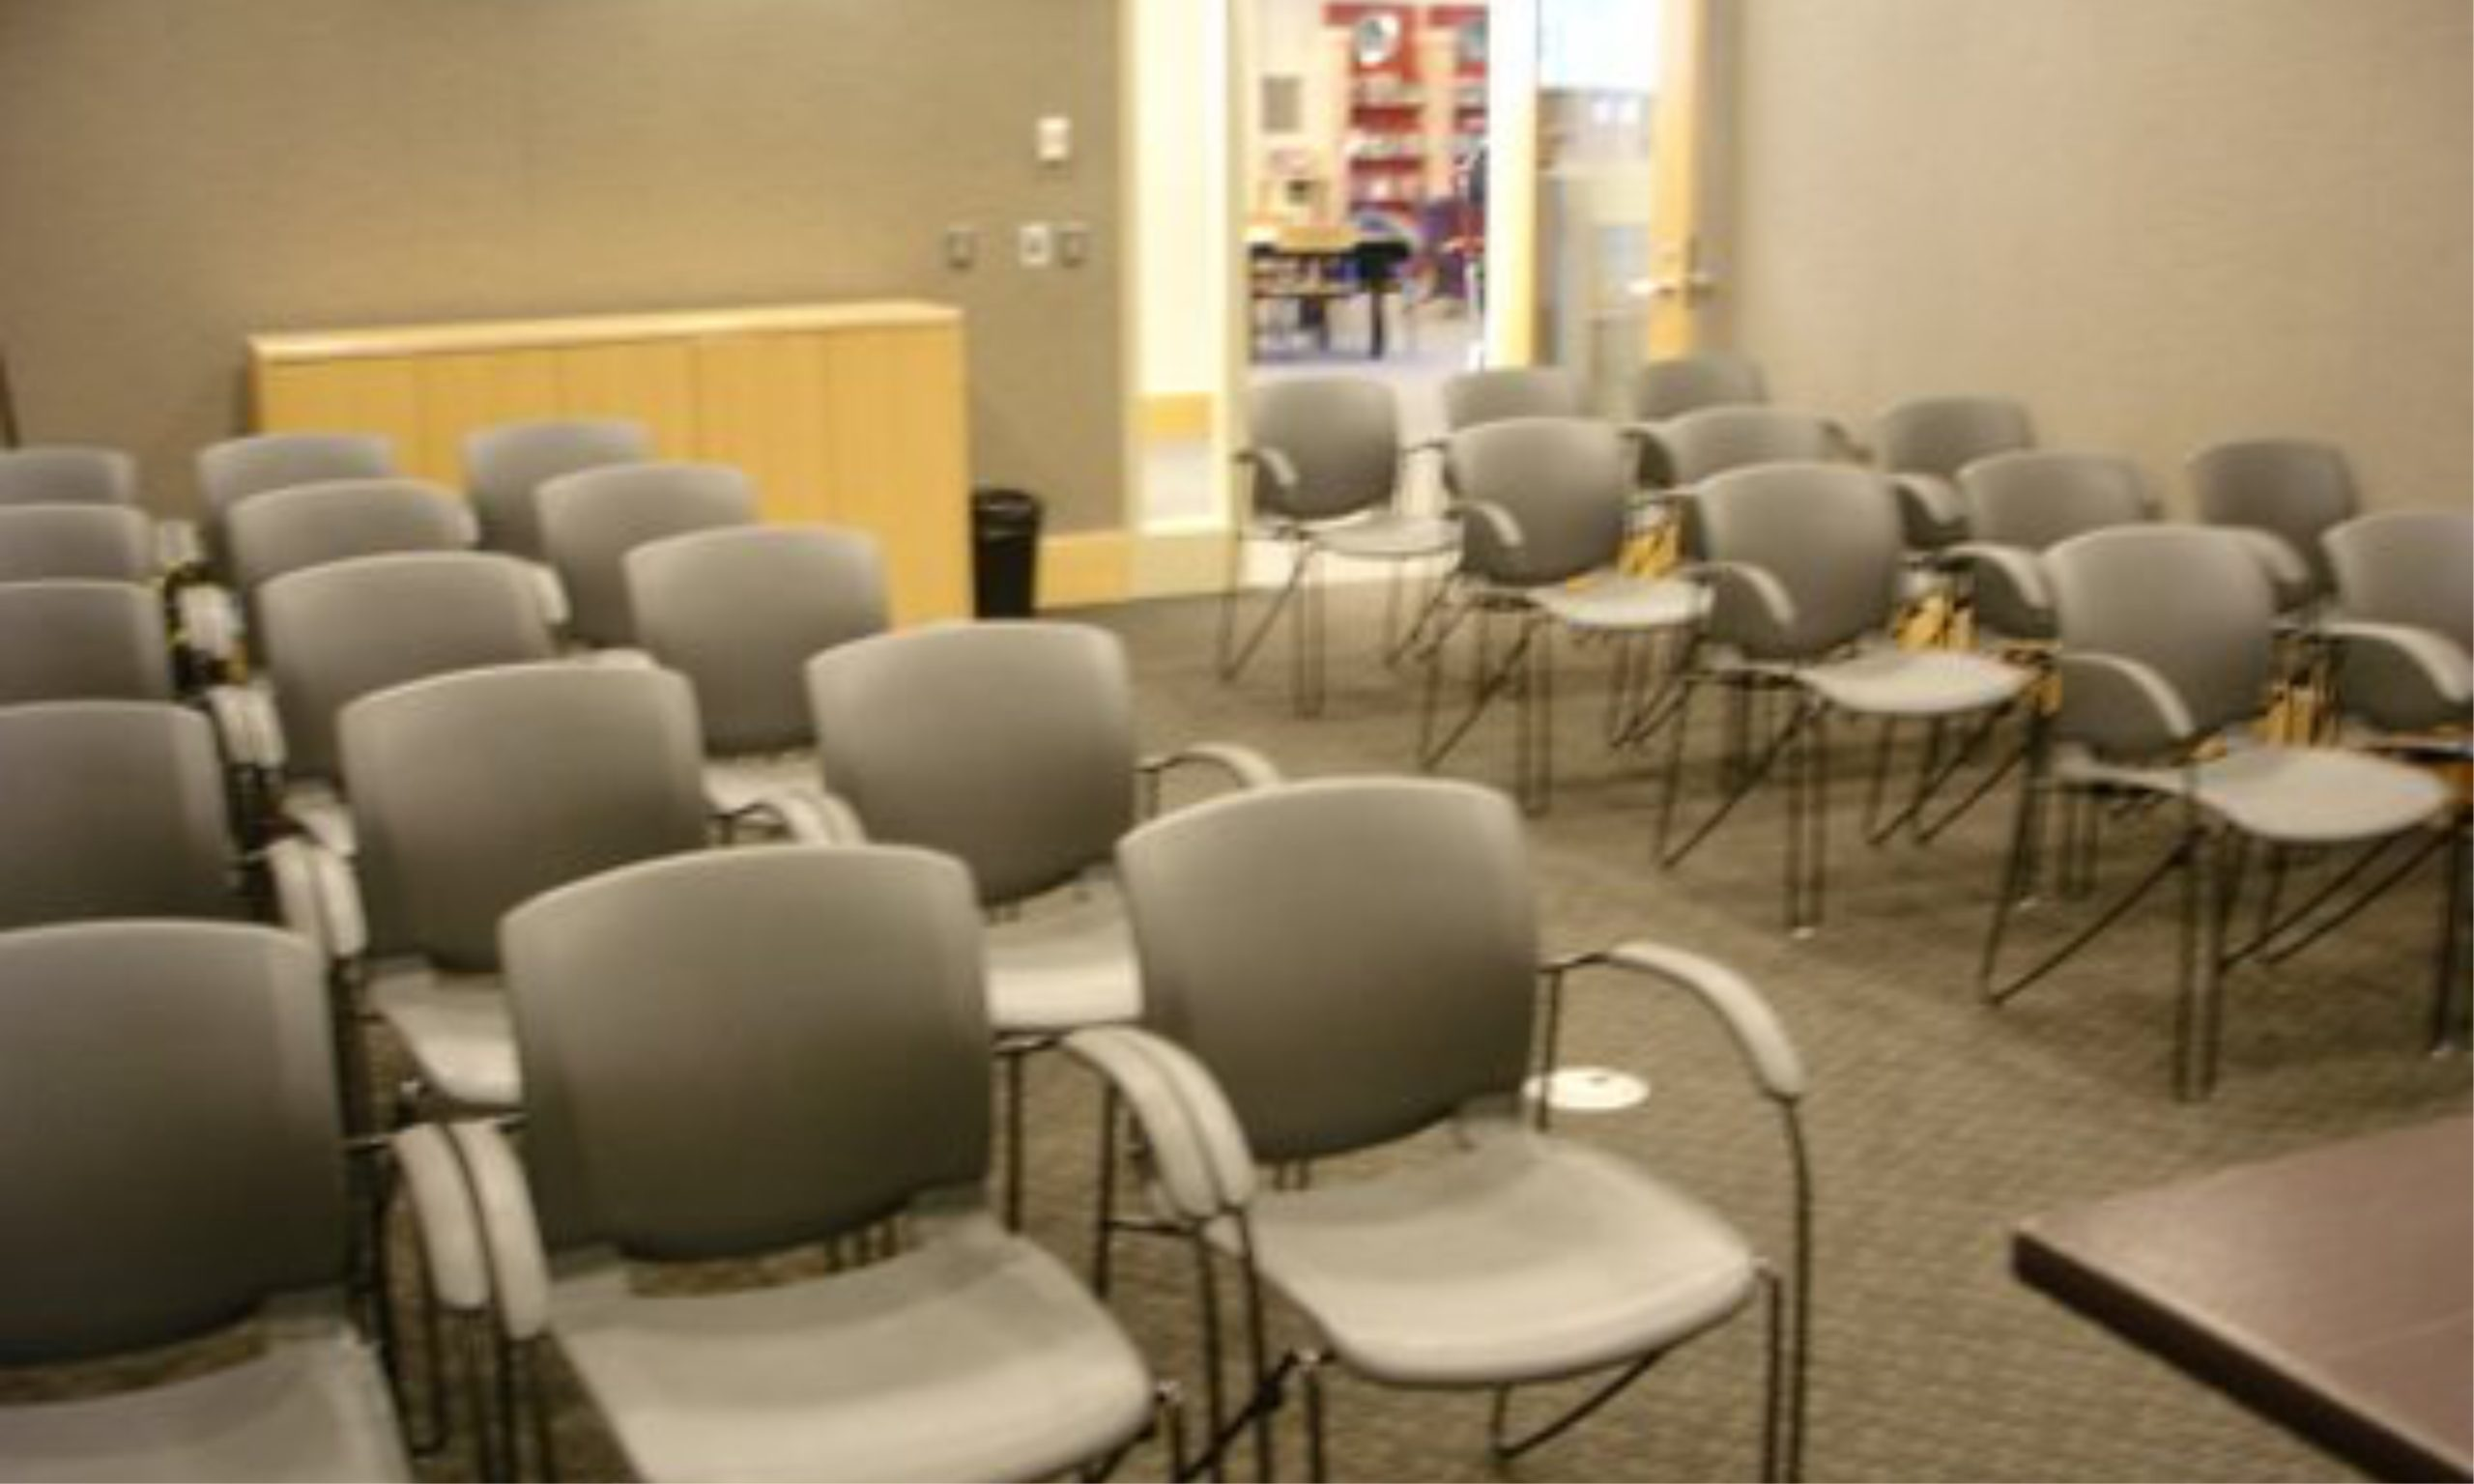 Riverfront Room 2B - Theater Style